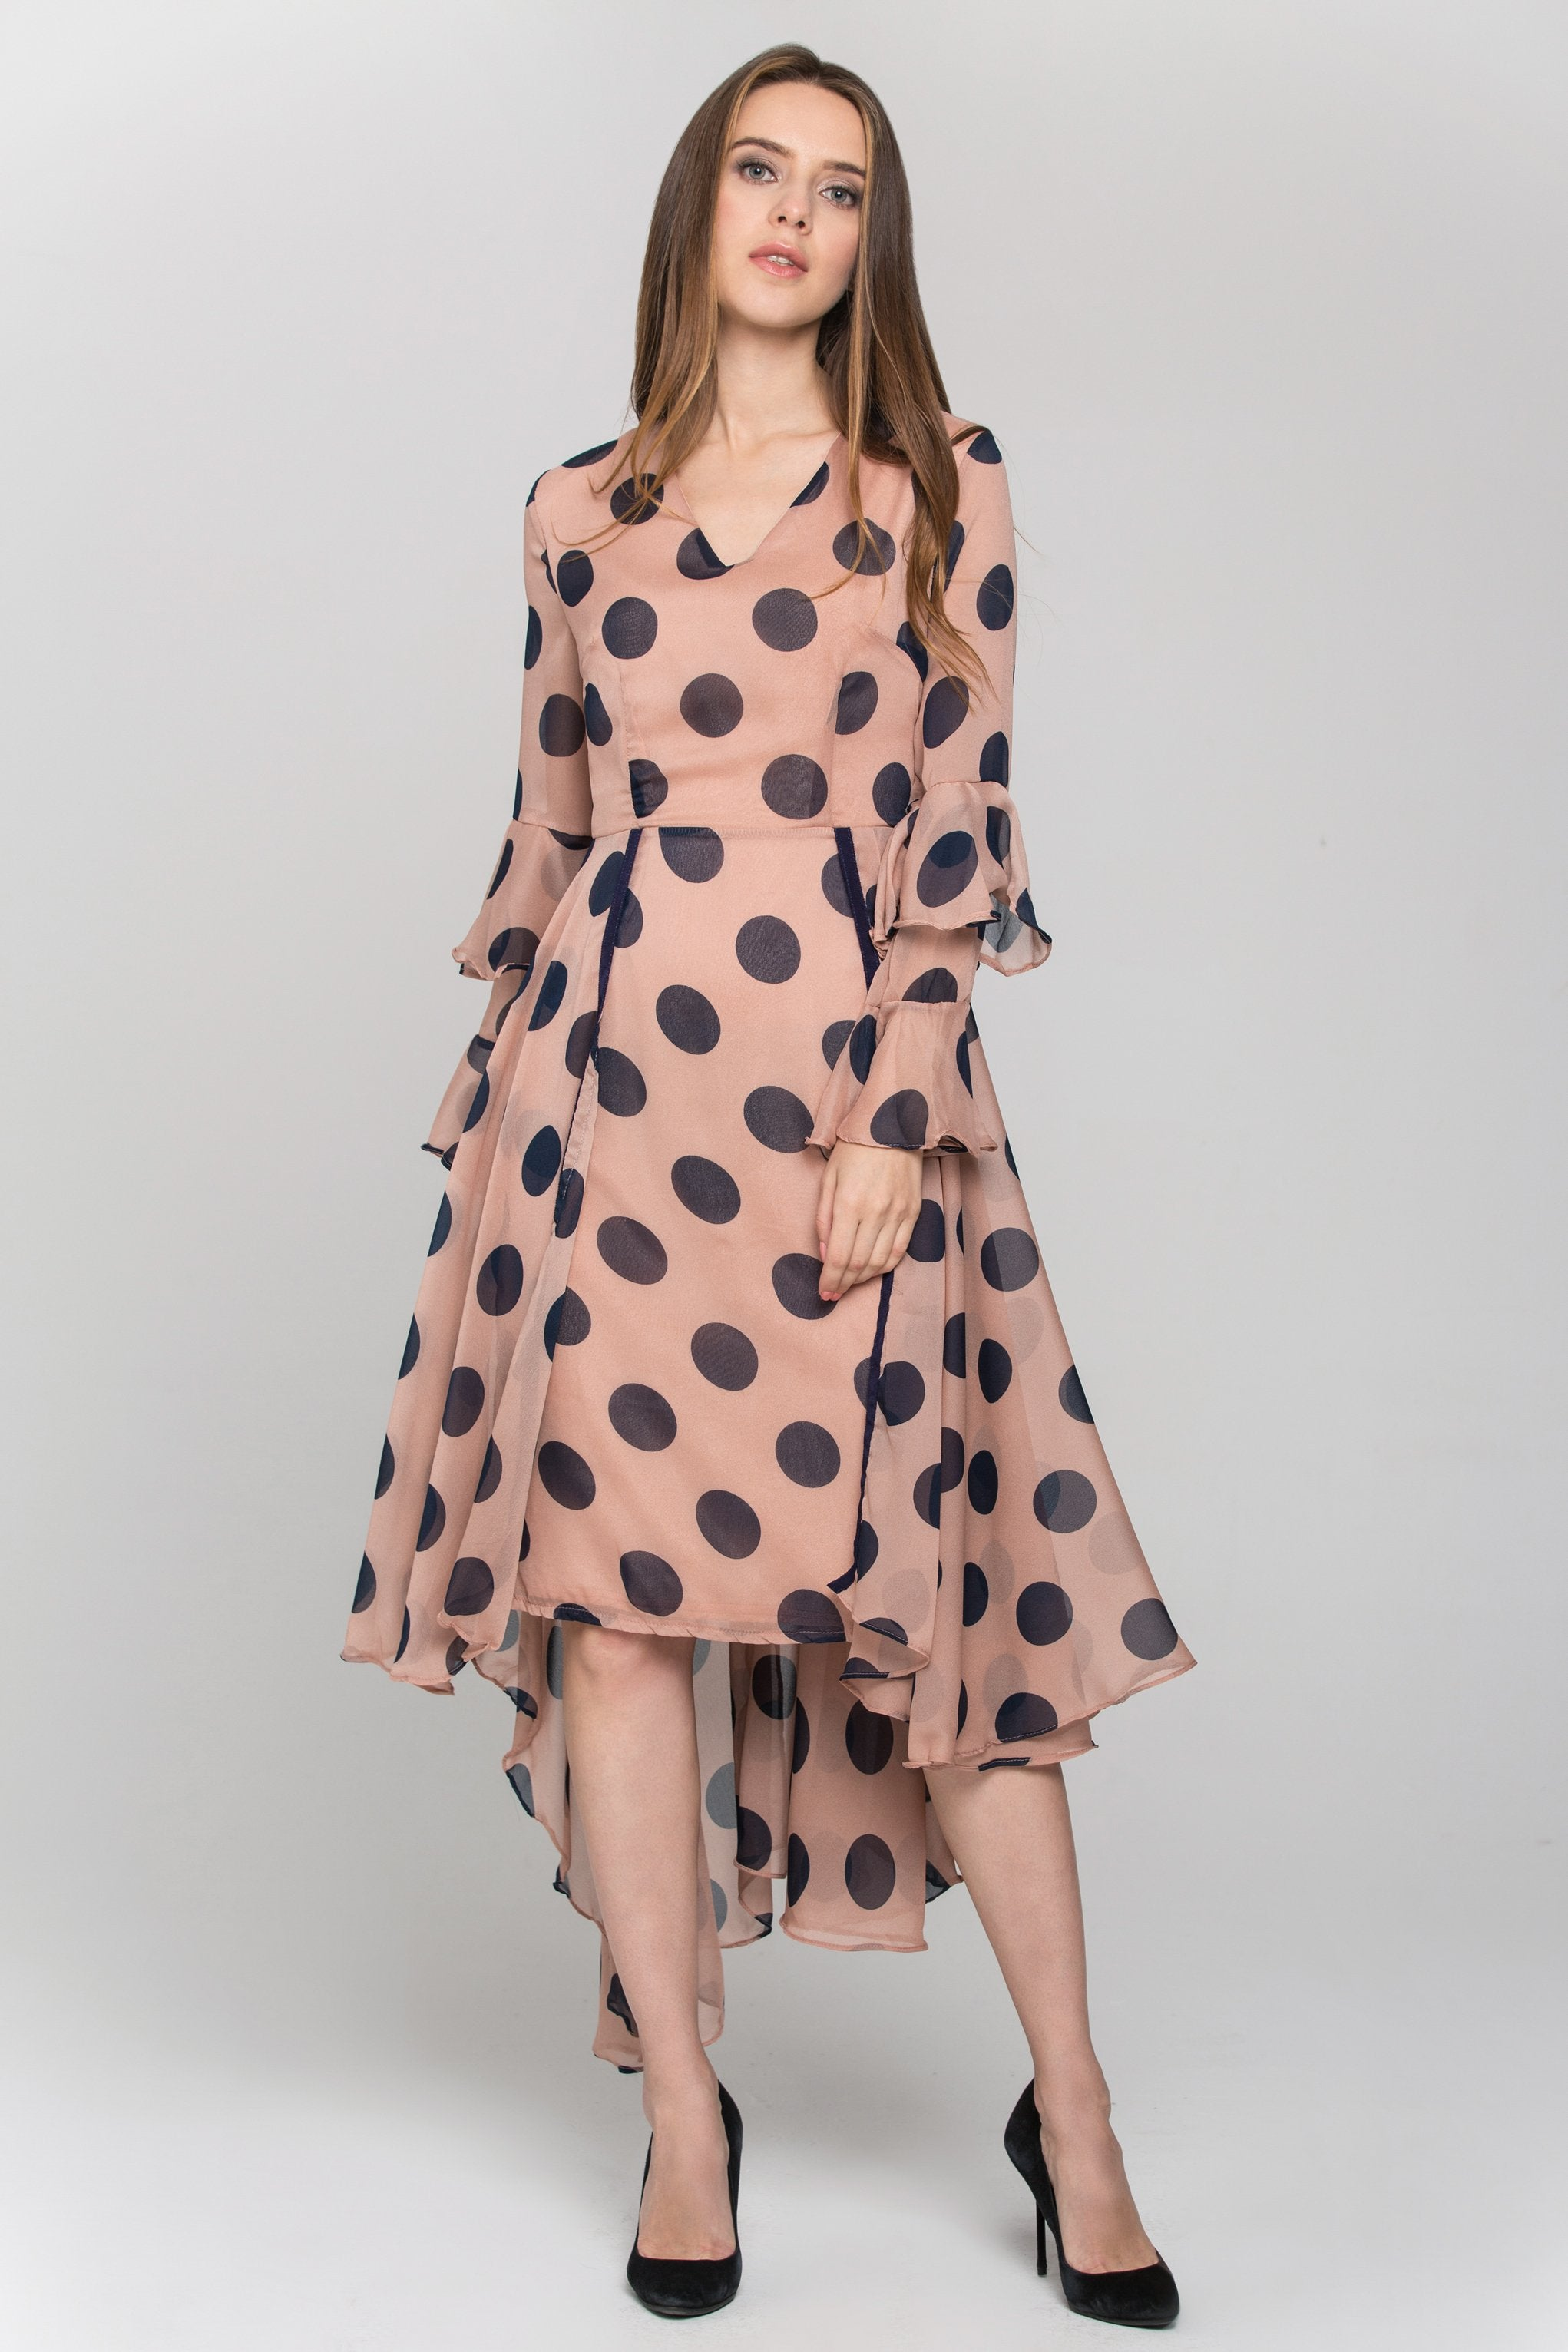 polka dotted dress